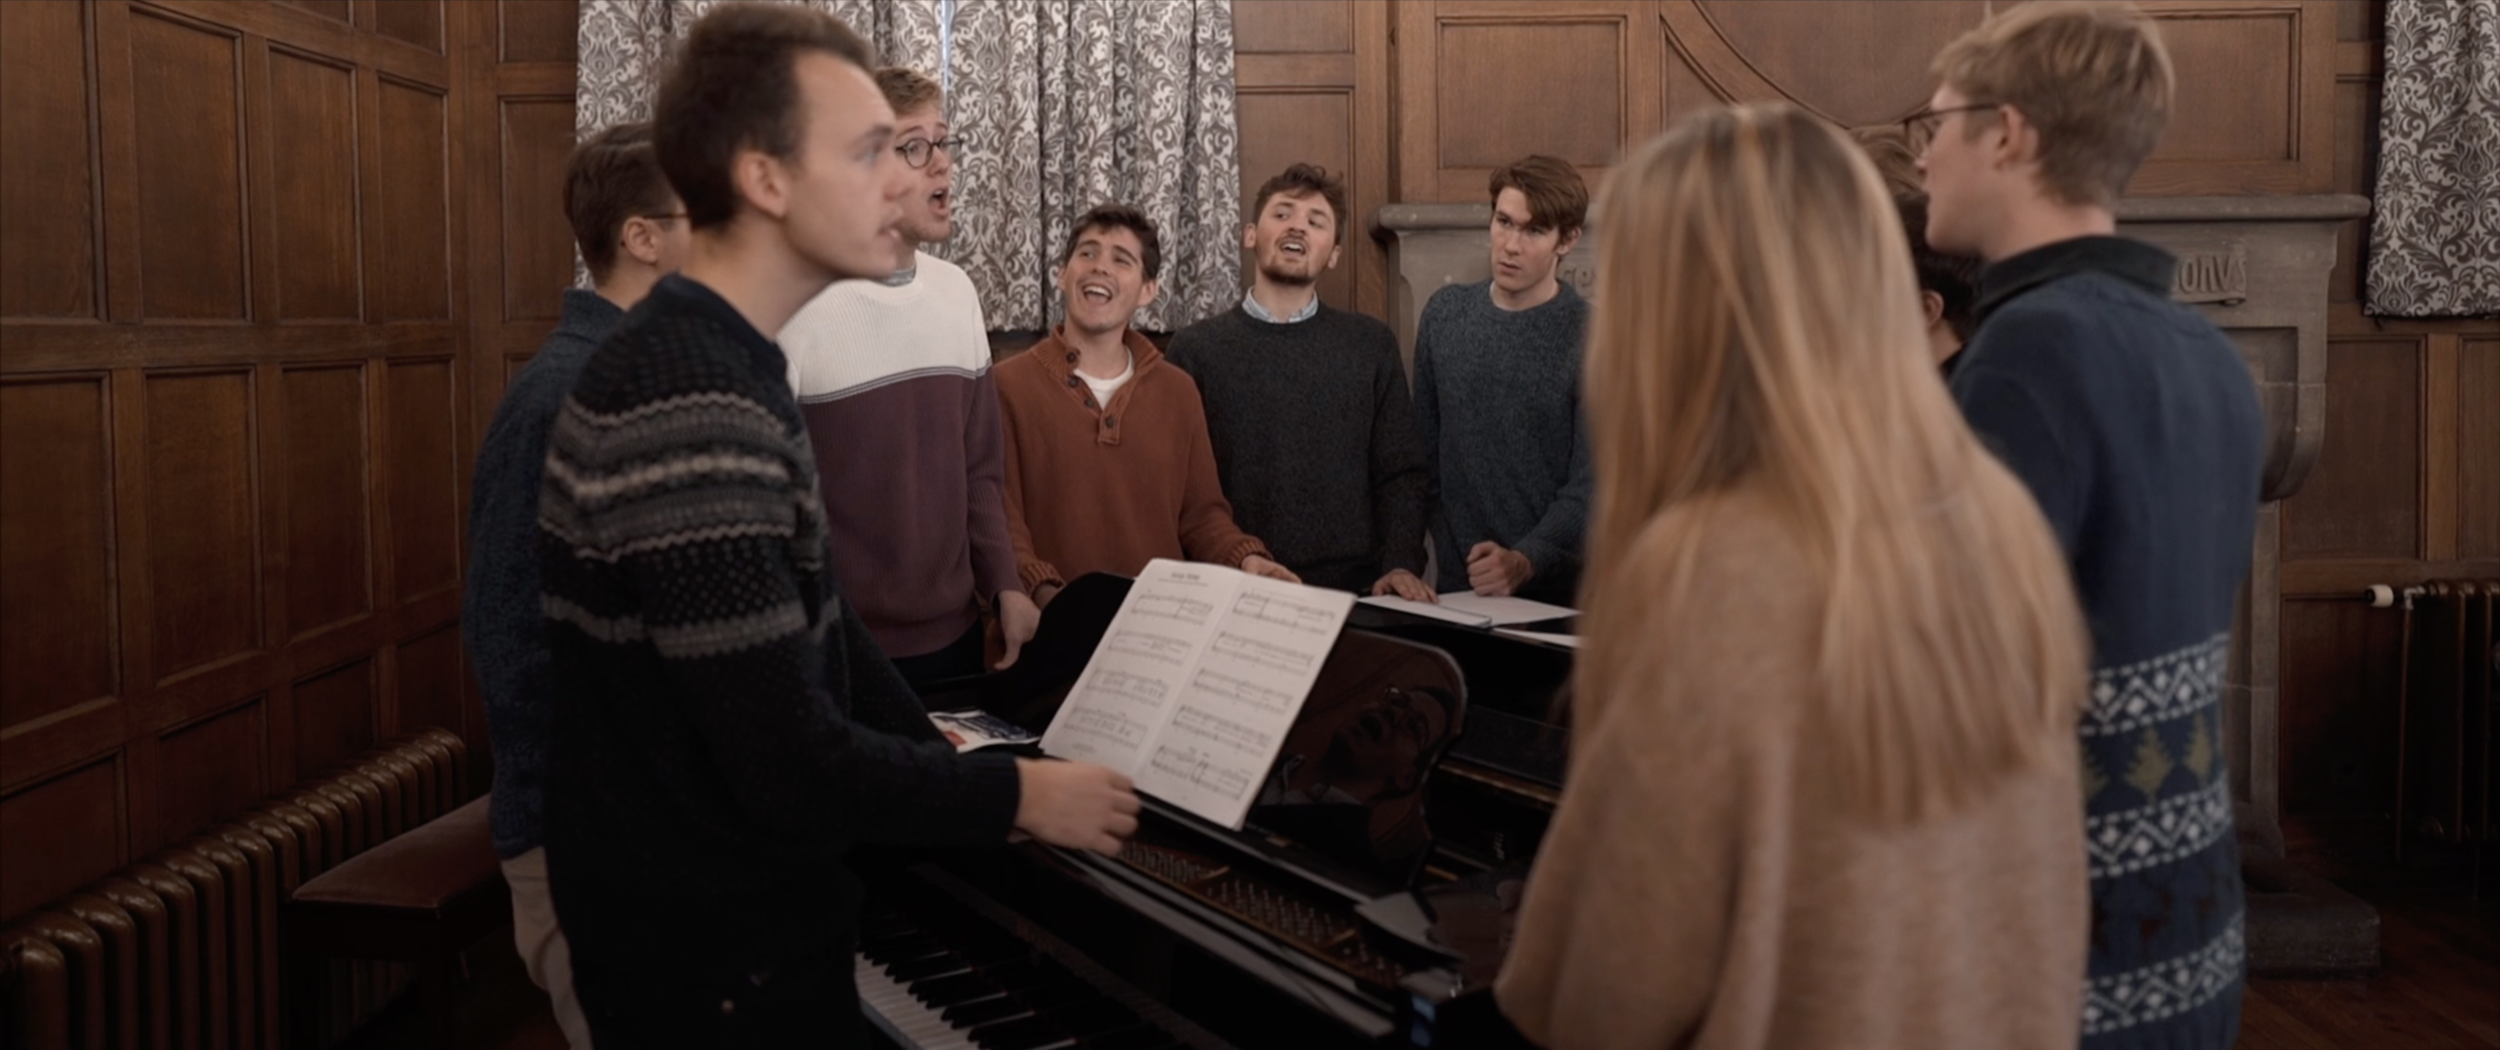 THE OTHER GUYS A CAPPELLA MUSIC VIDEO - FAIRYTALE OF NEW YORK